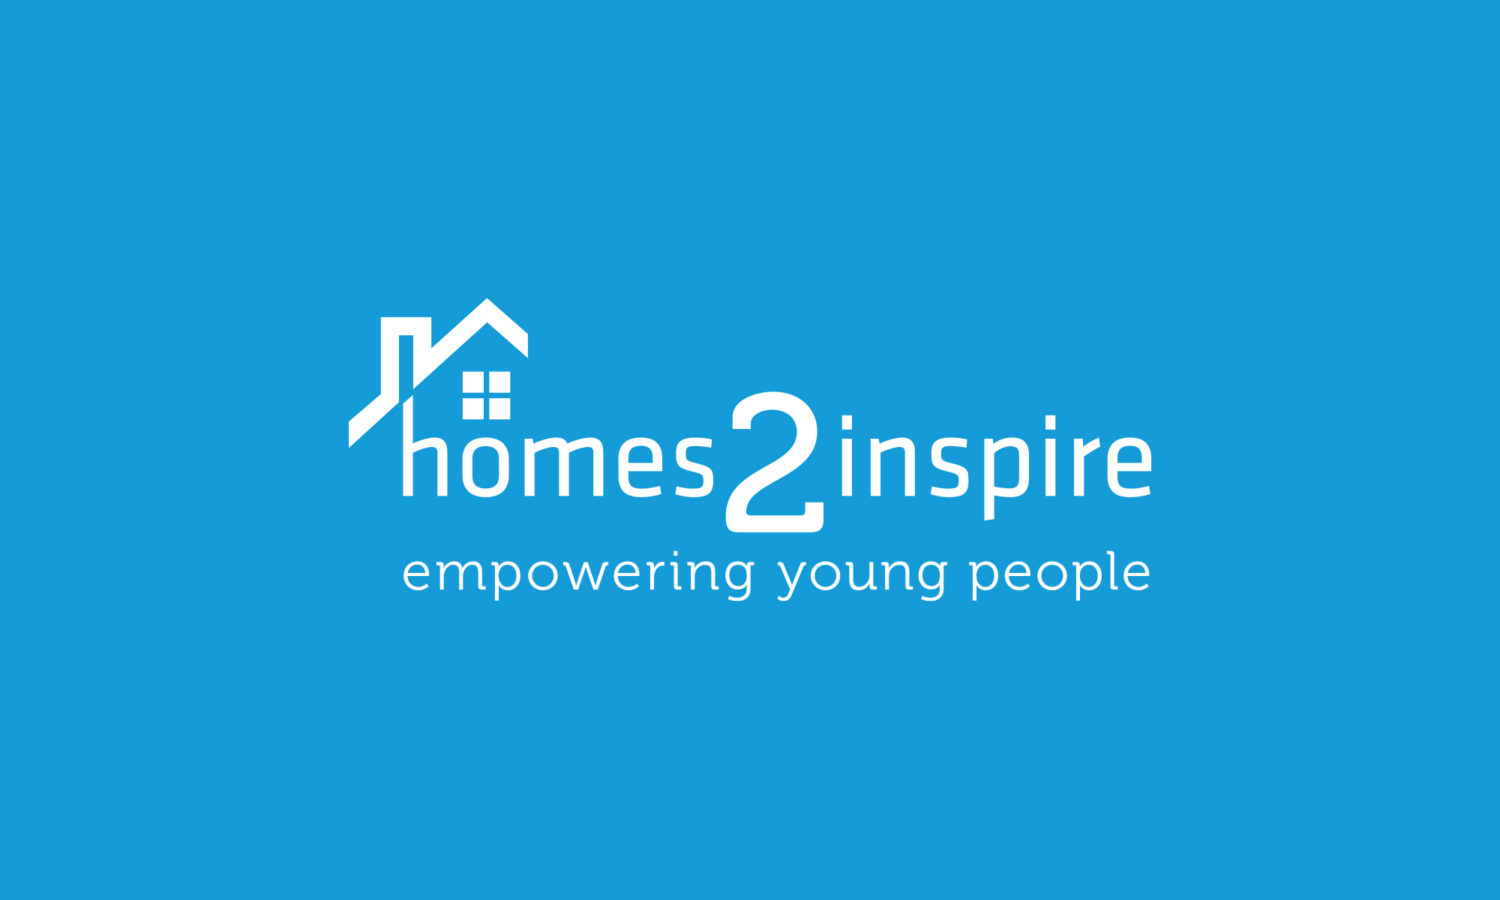 The homes2inspire logo